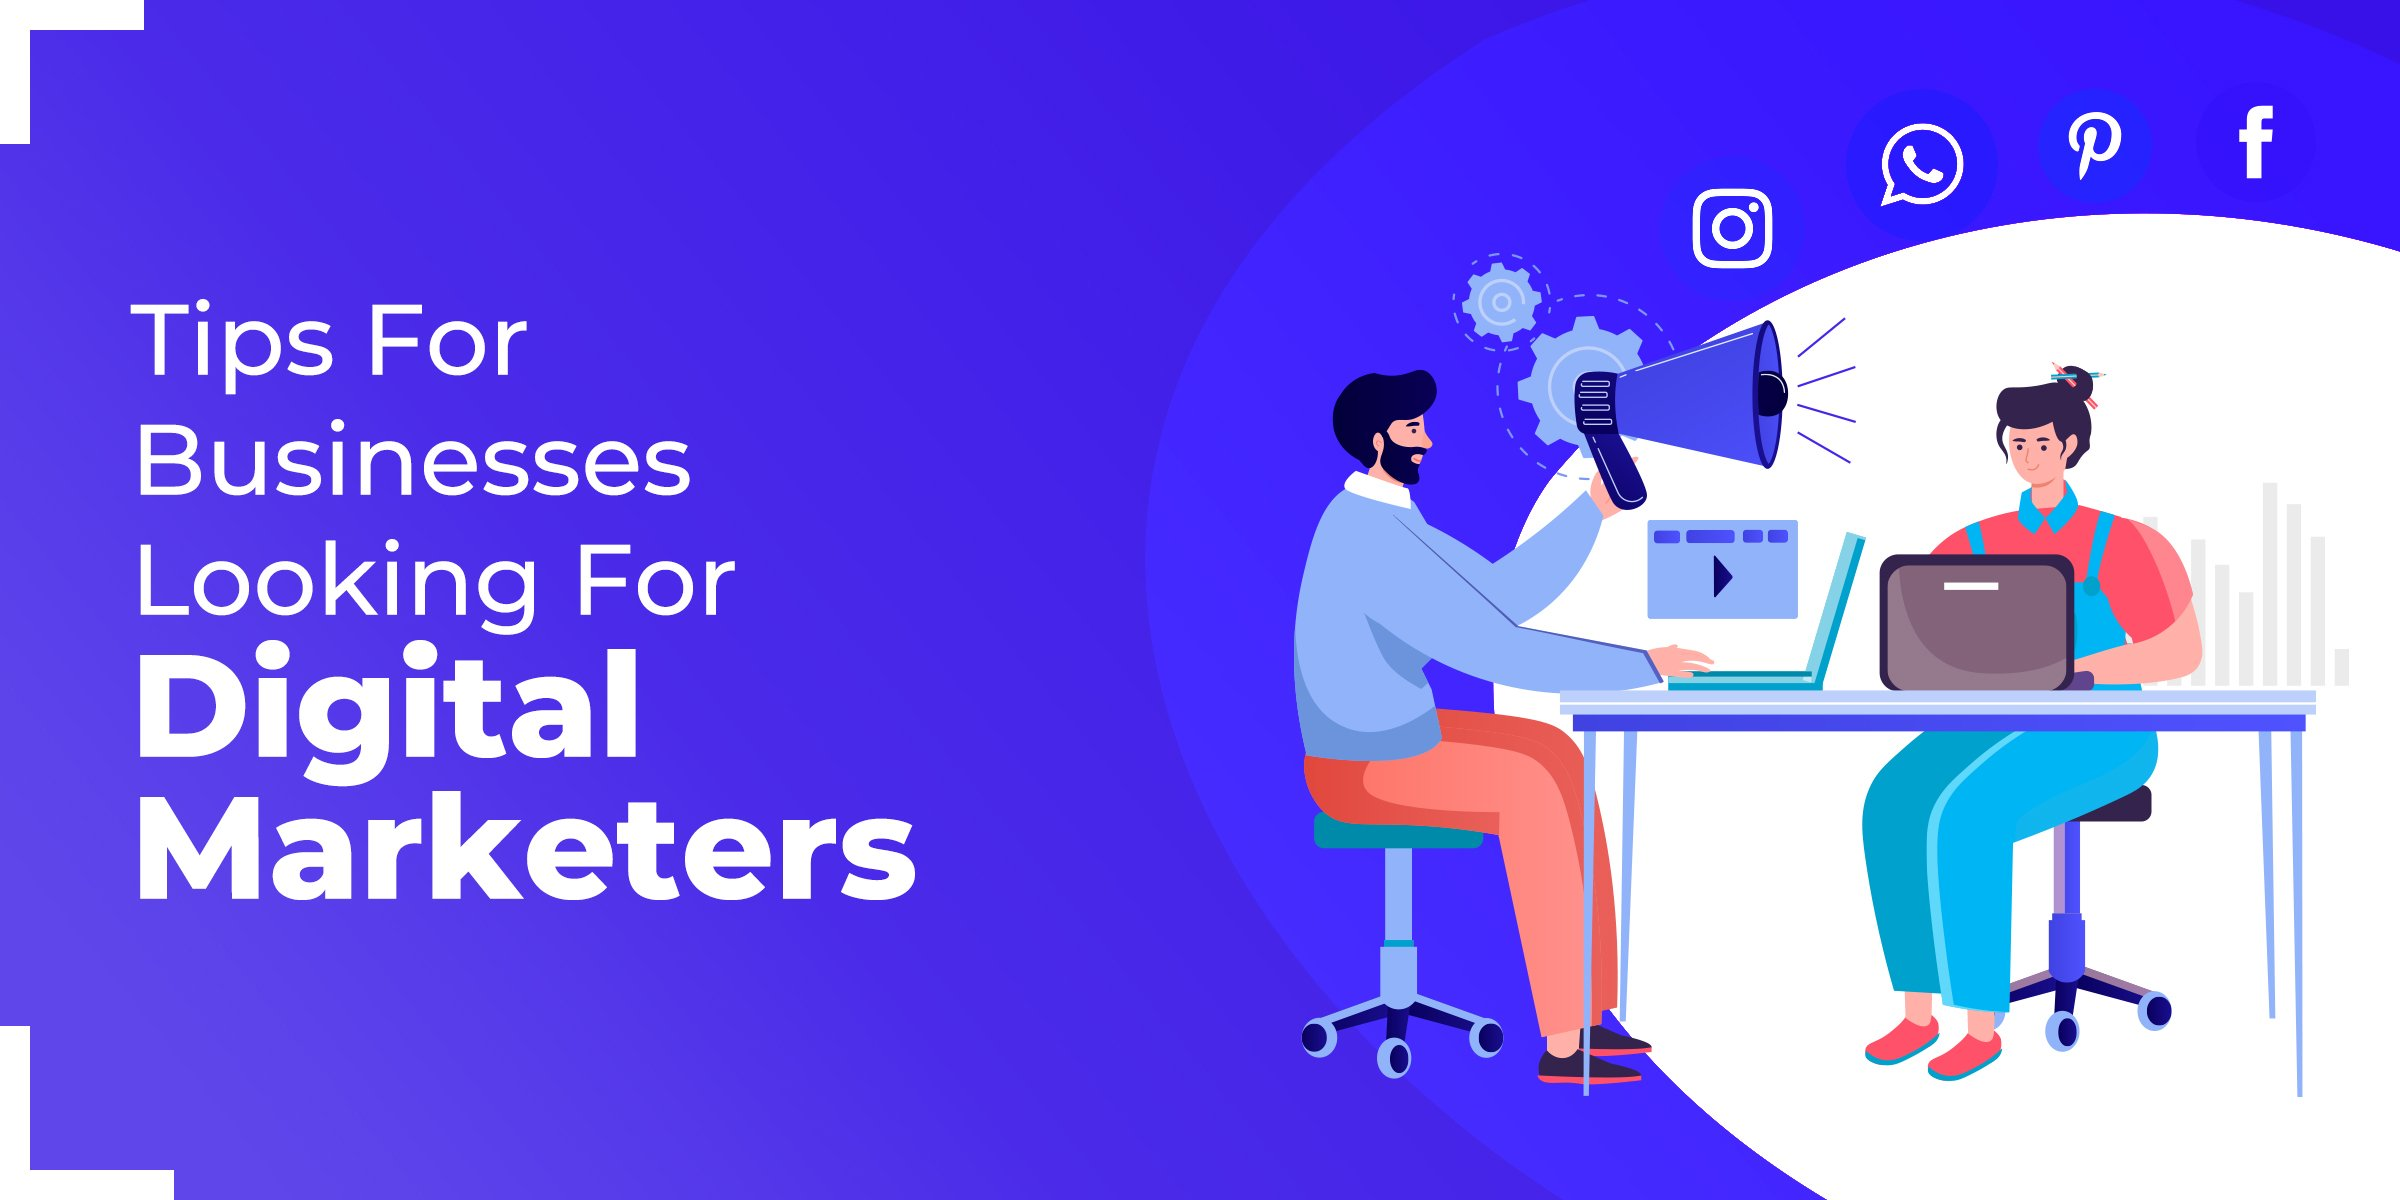 Tips For Businesses Looking For Digital Marketers